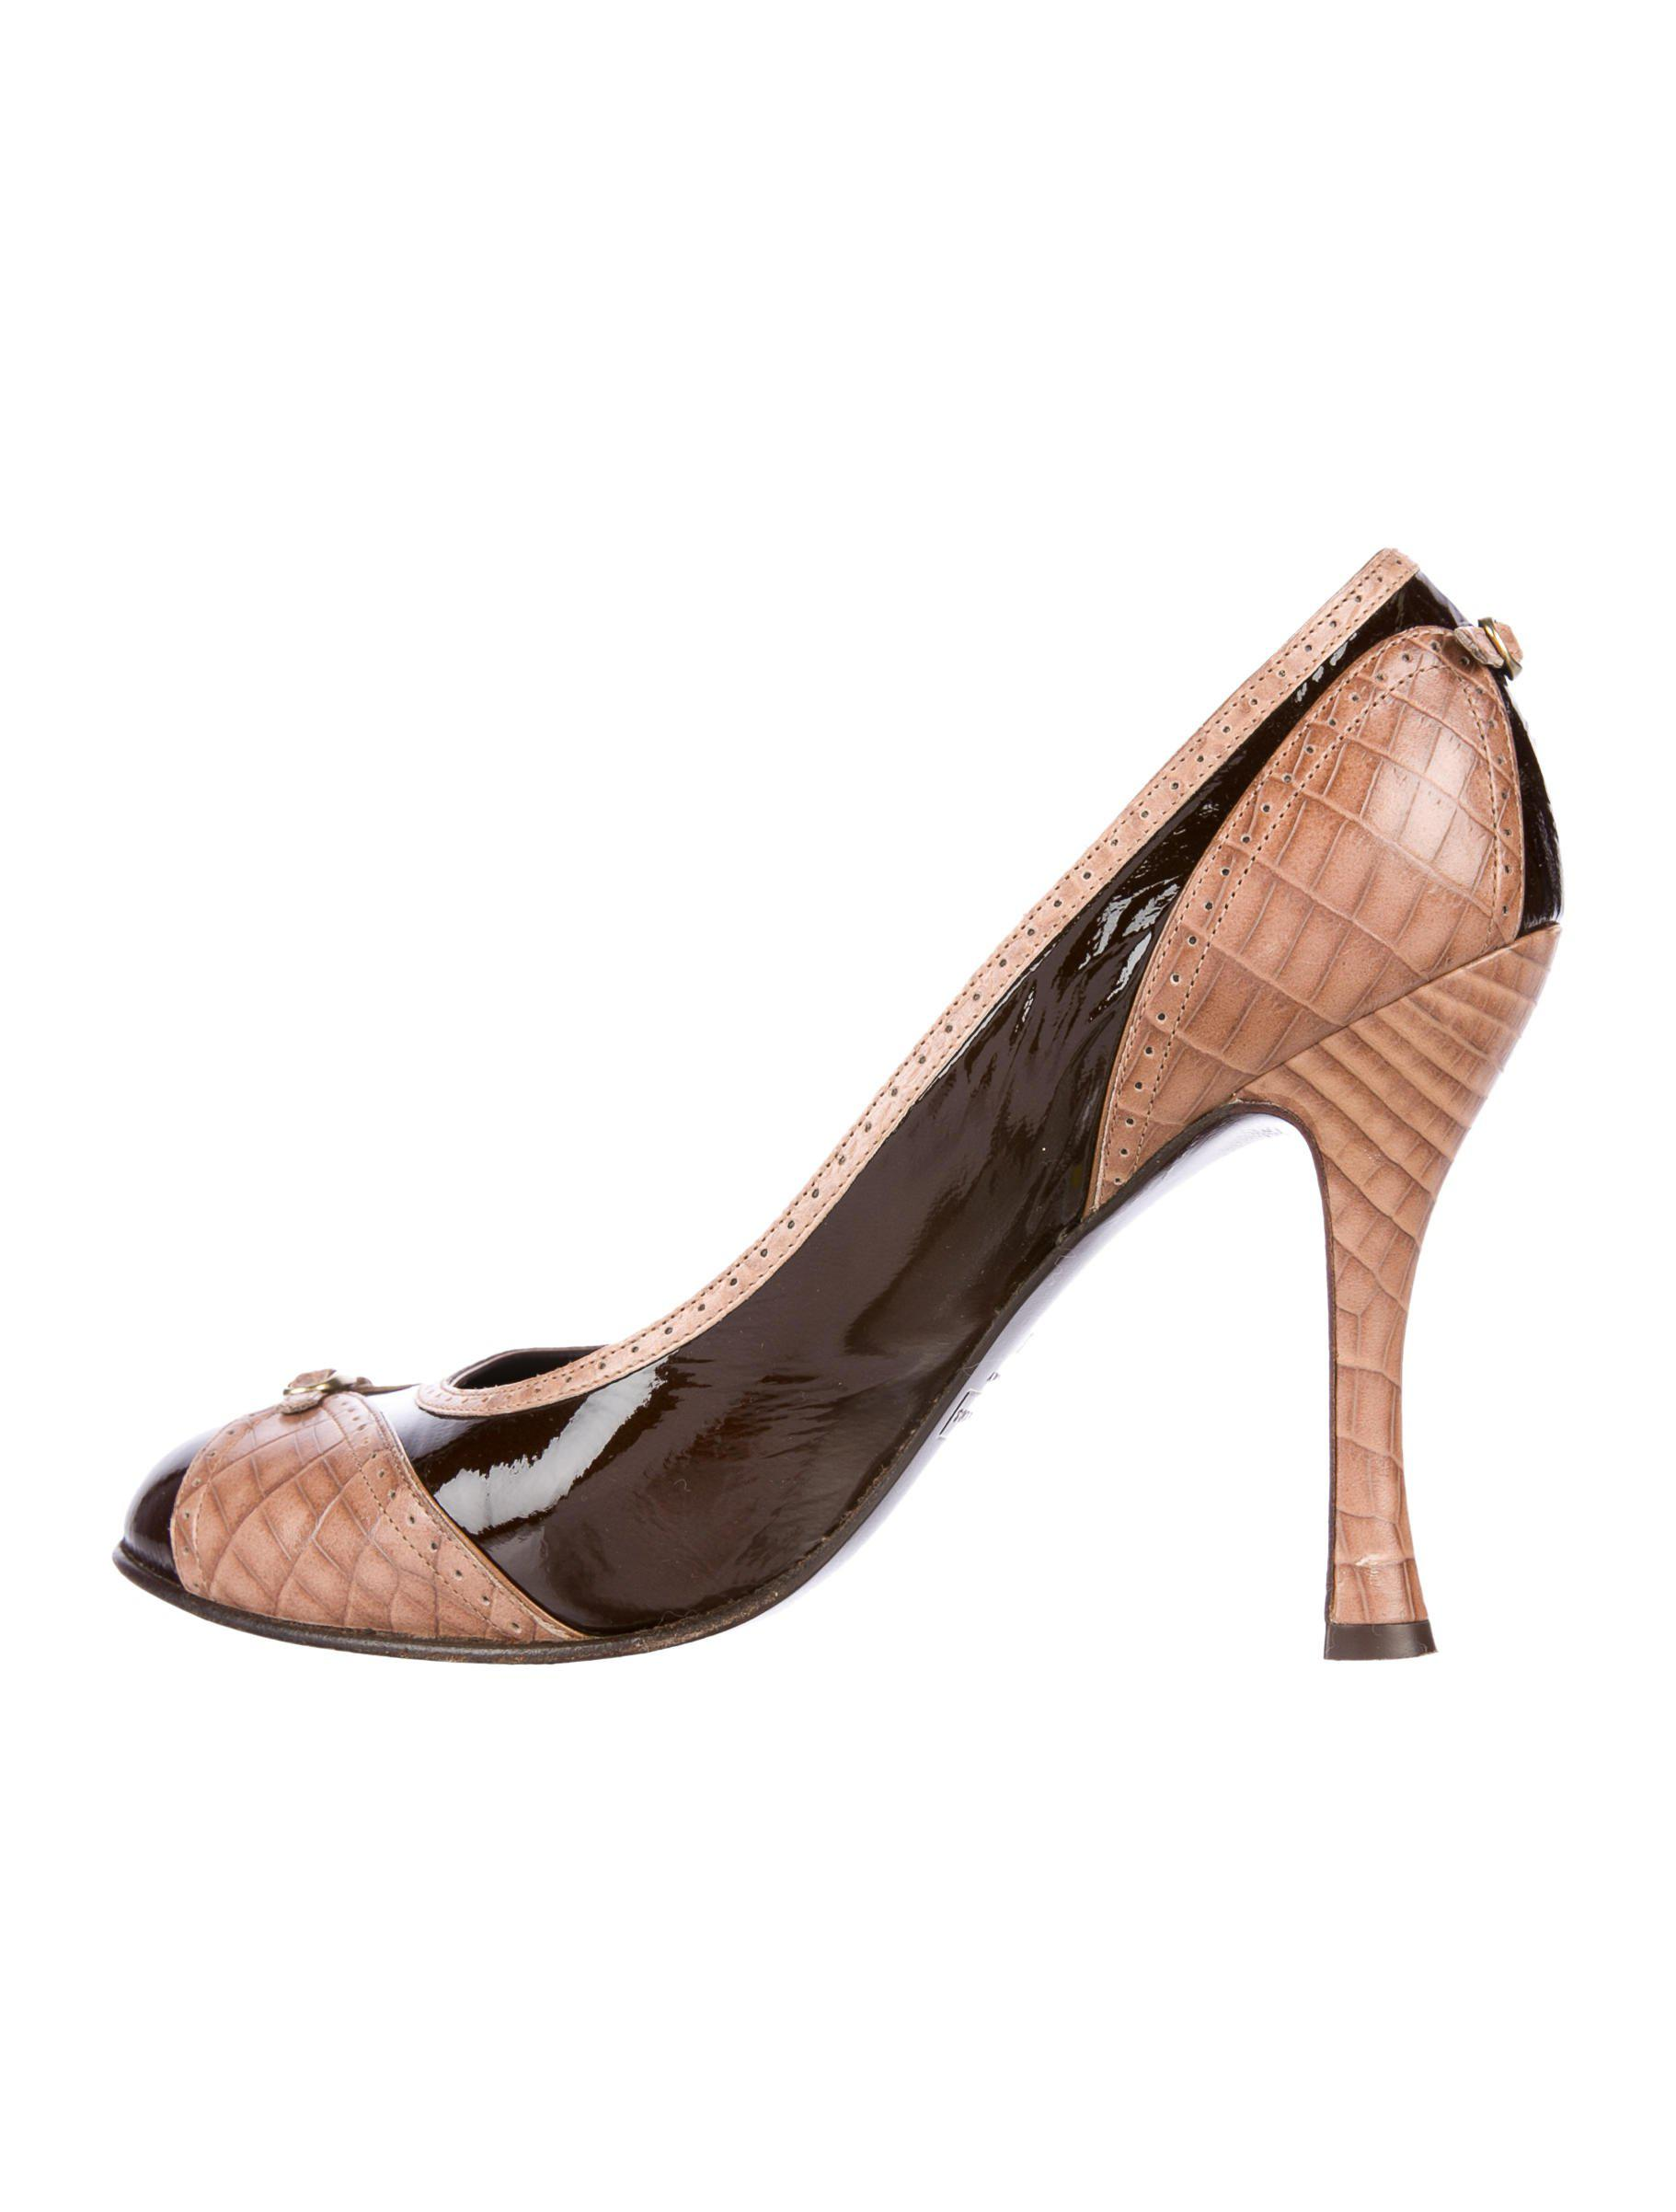 pre order cheap price Marc Jacobs Snakeskin Round-Toe Pumps pay with paypal cheap online clearance best seller 2014 new online under $60 sale online ODH3w